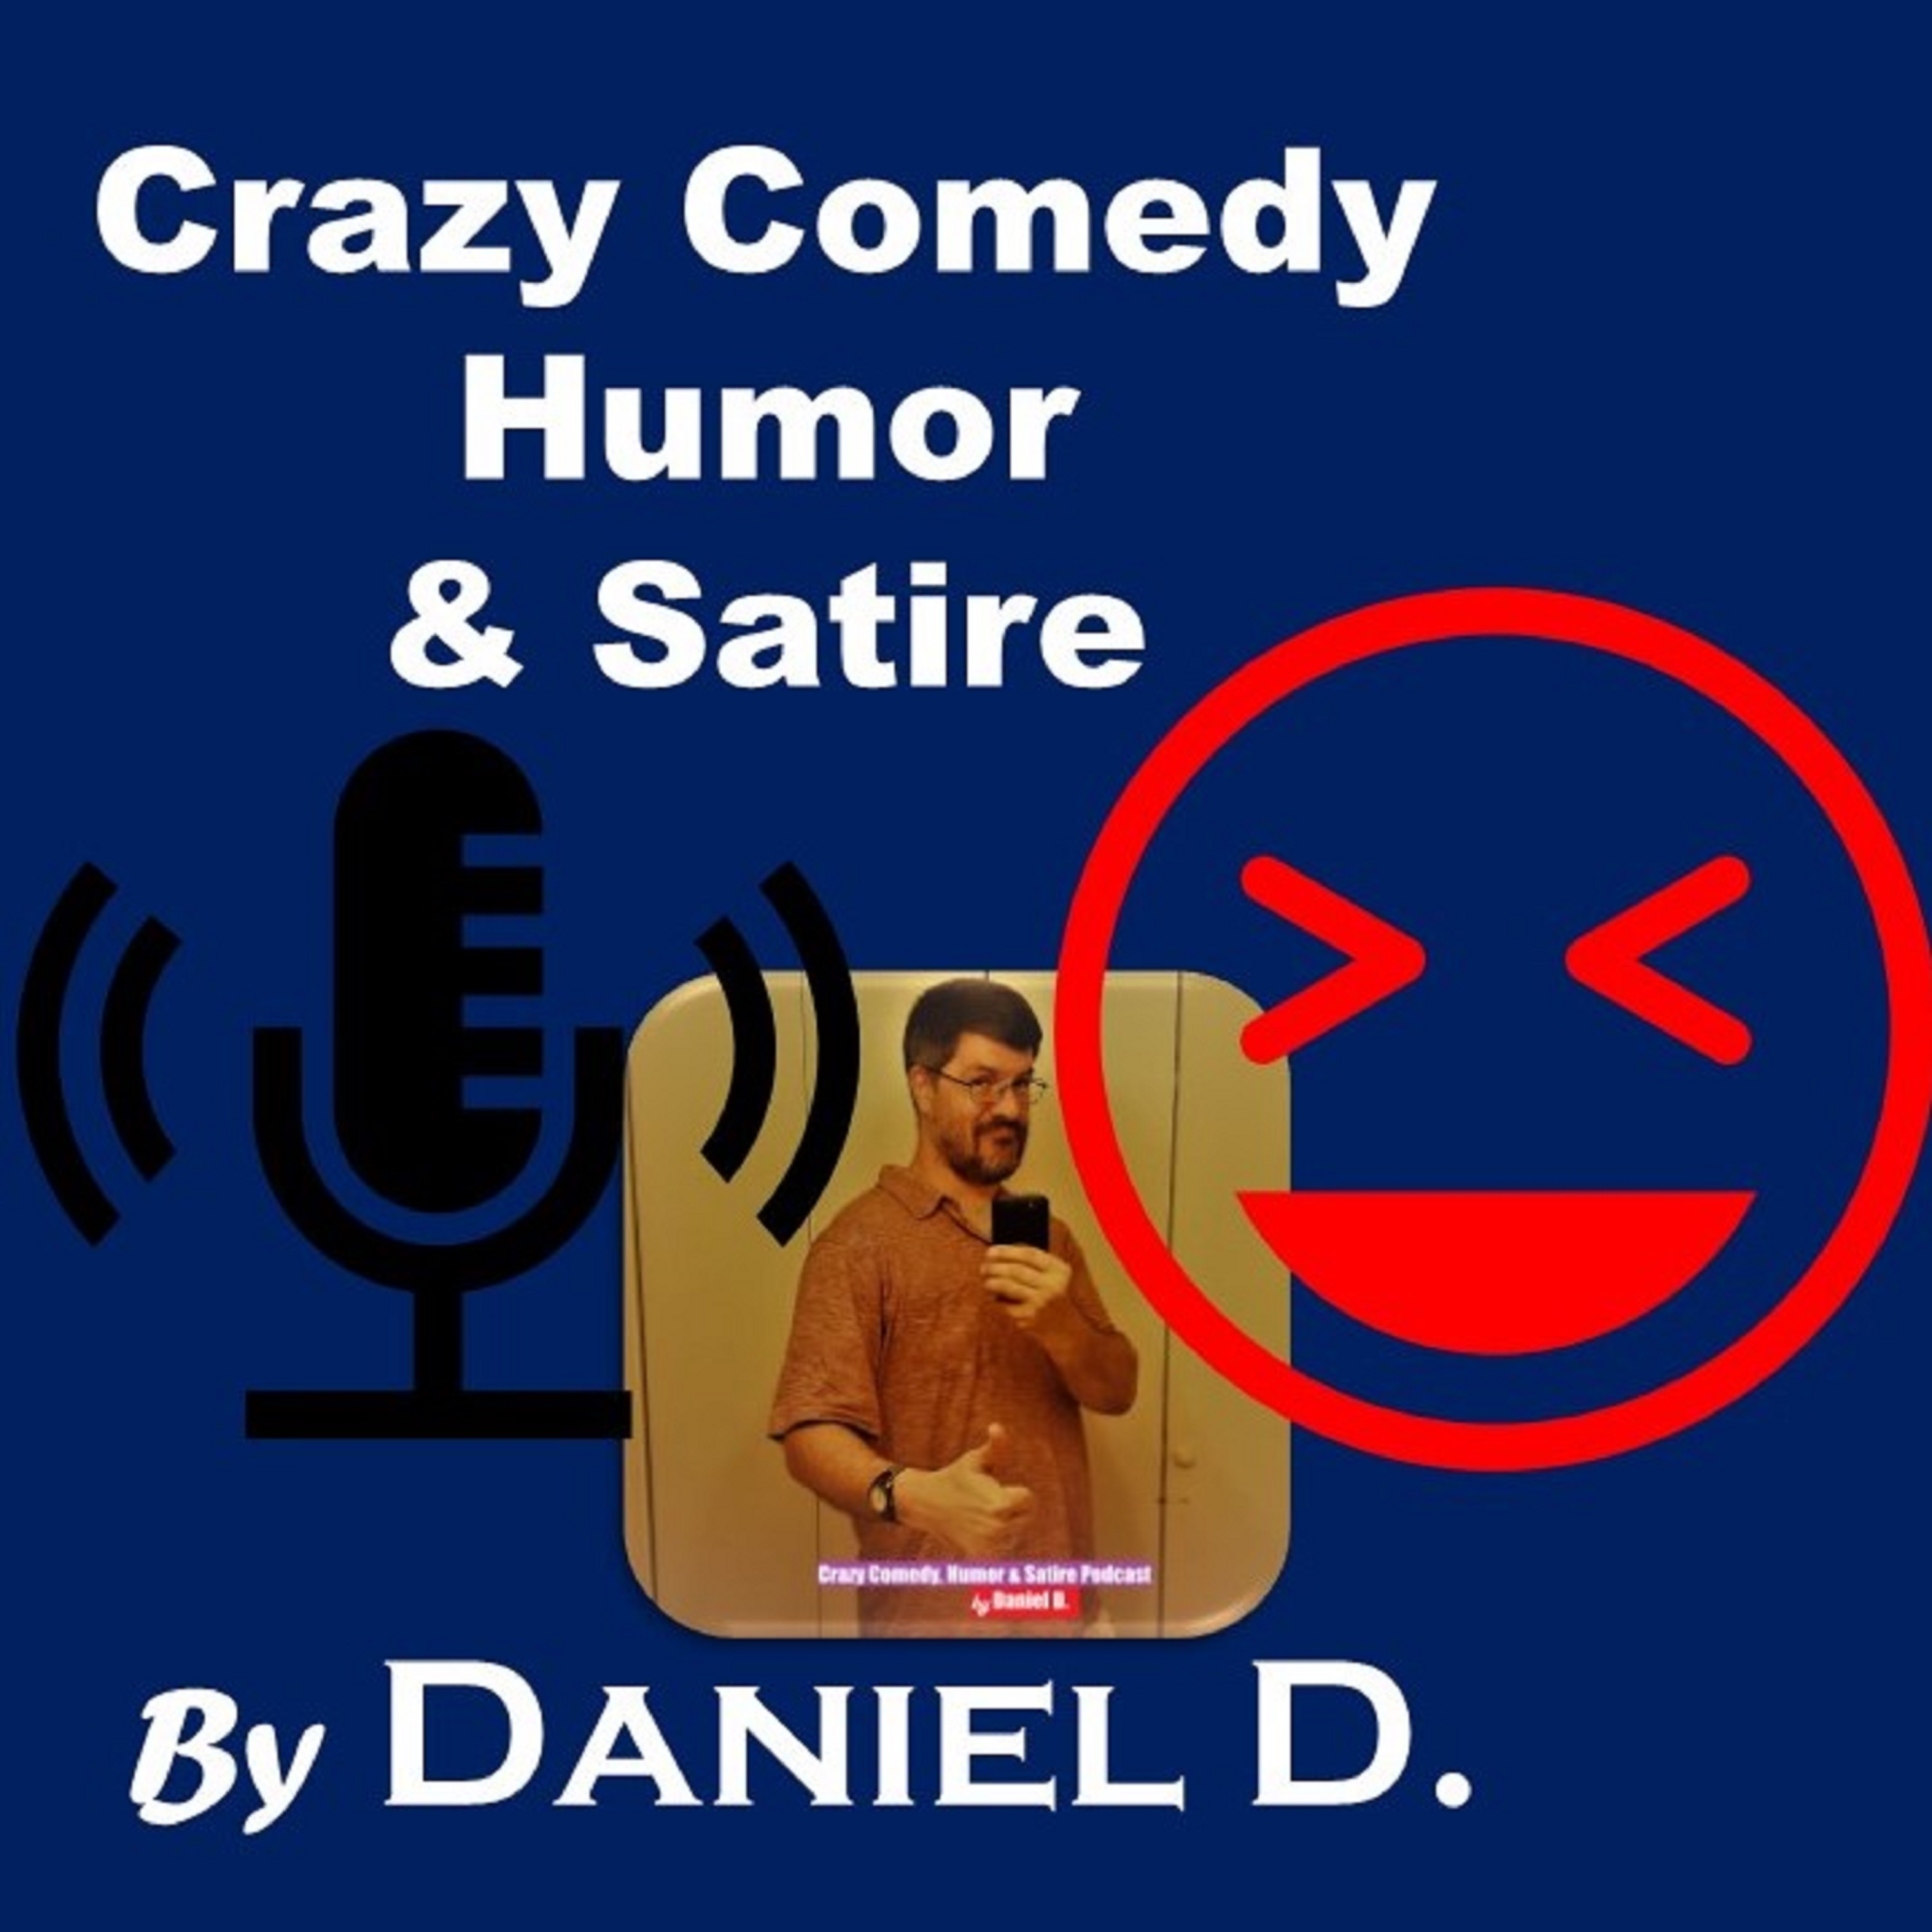 Artwork for Season Two, Episode One of The Crazy Comedy, Humor & Satire Podcast